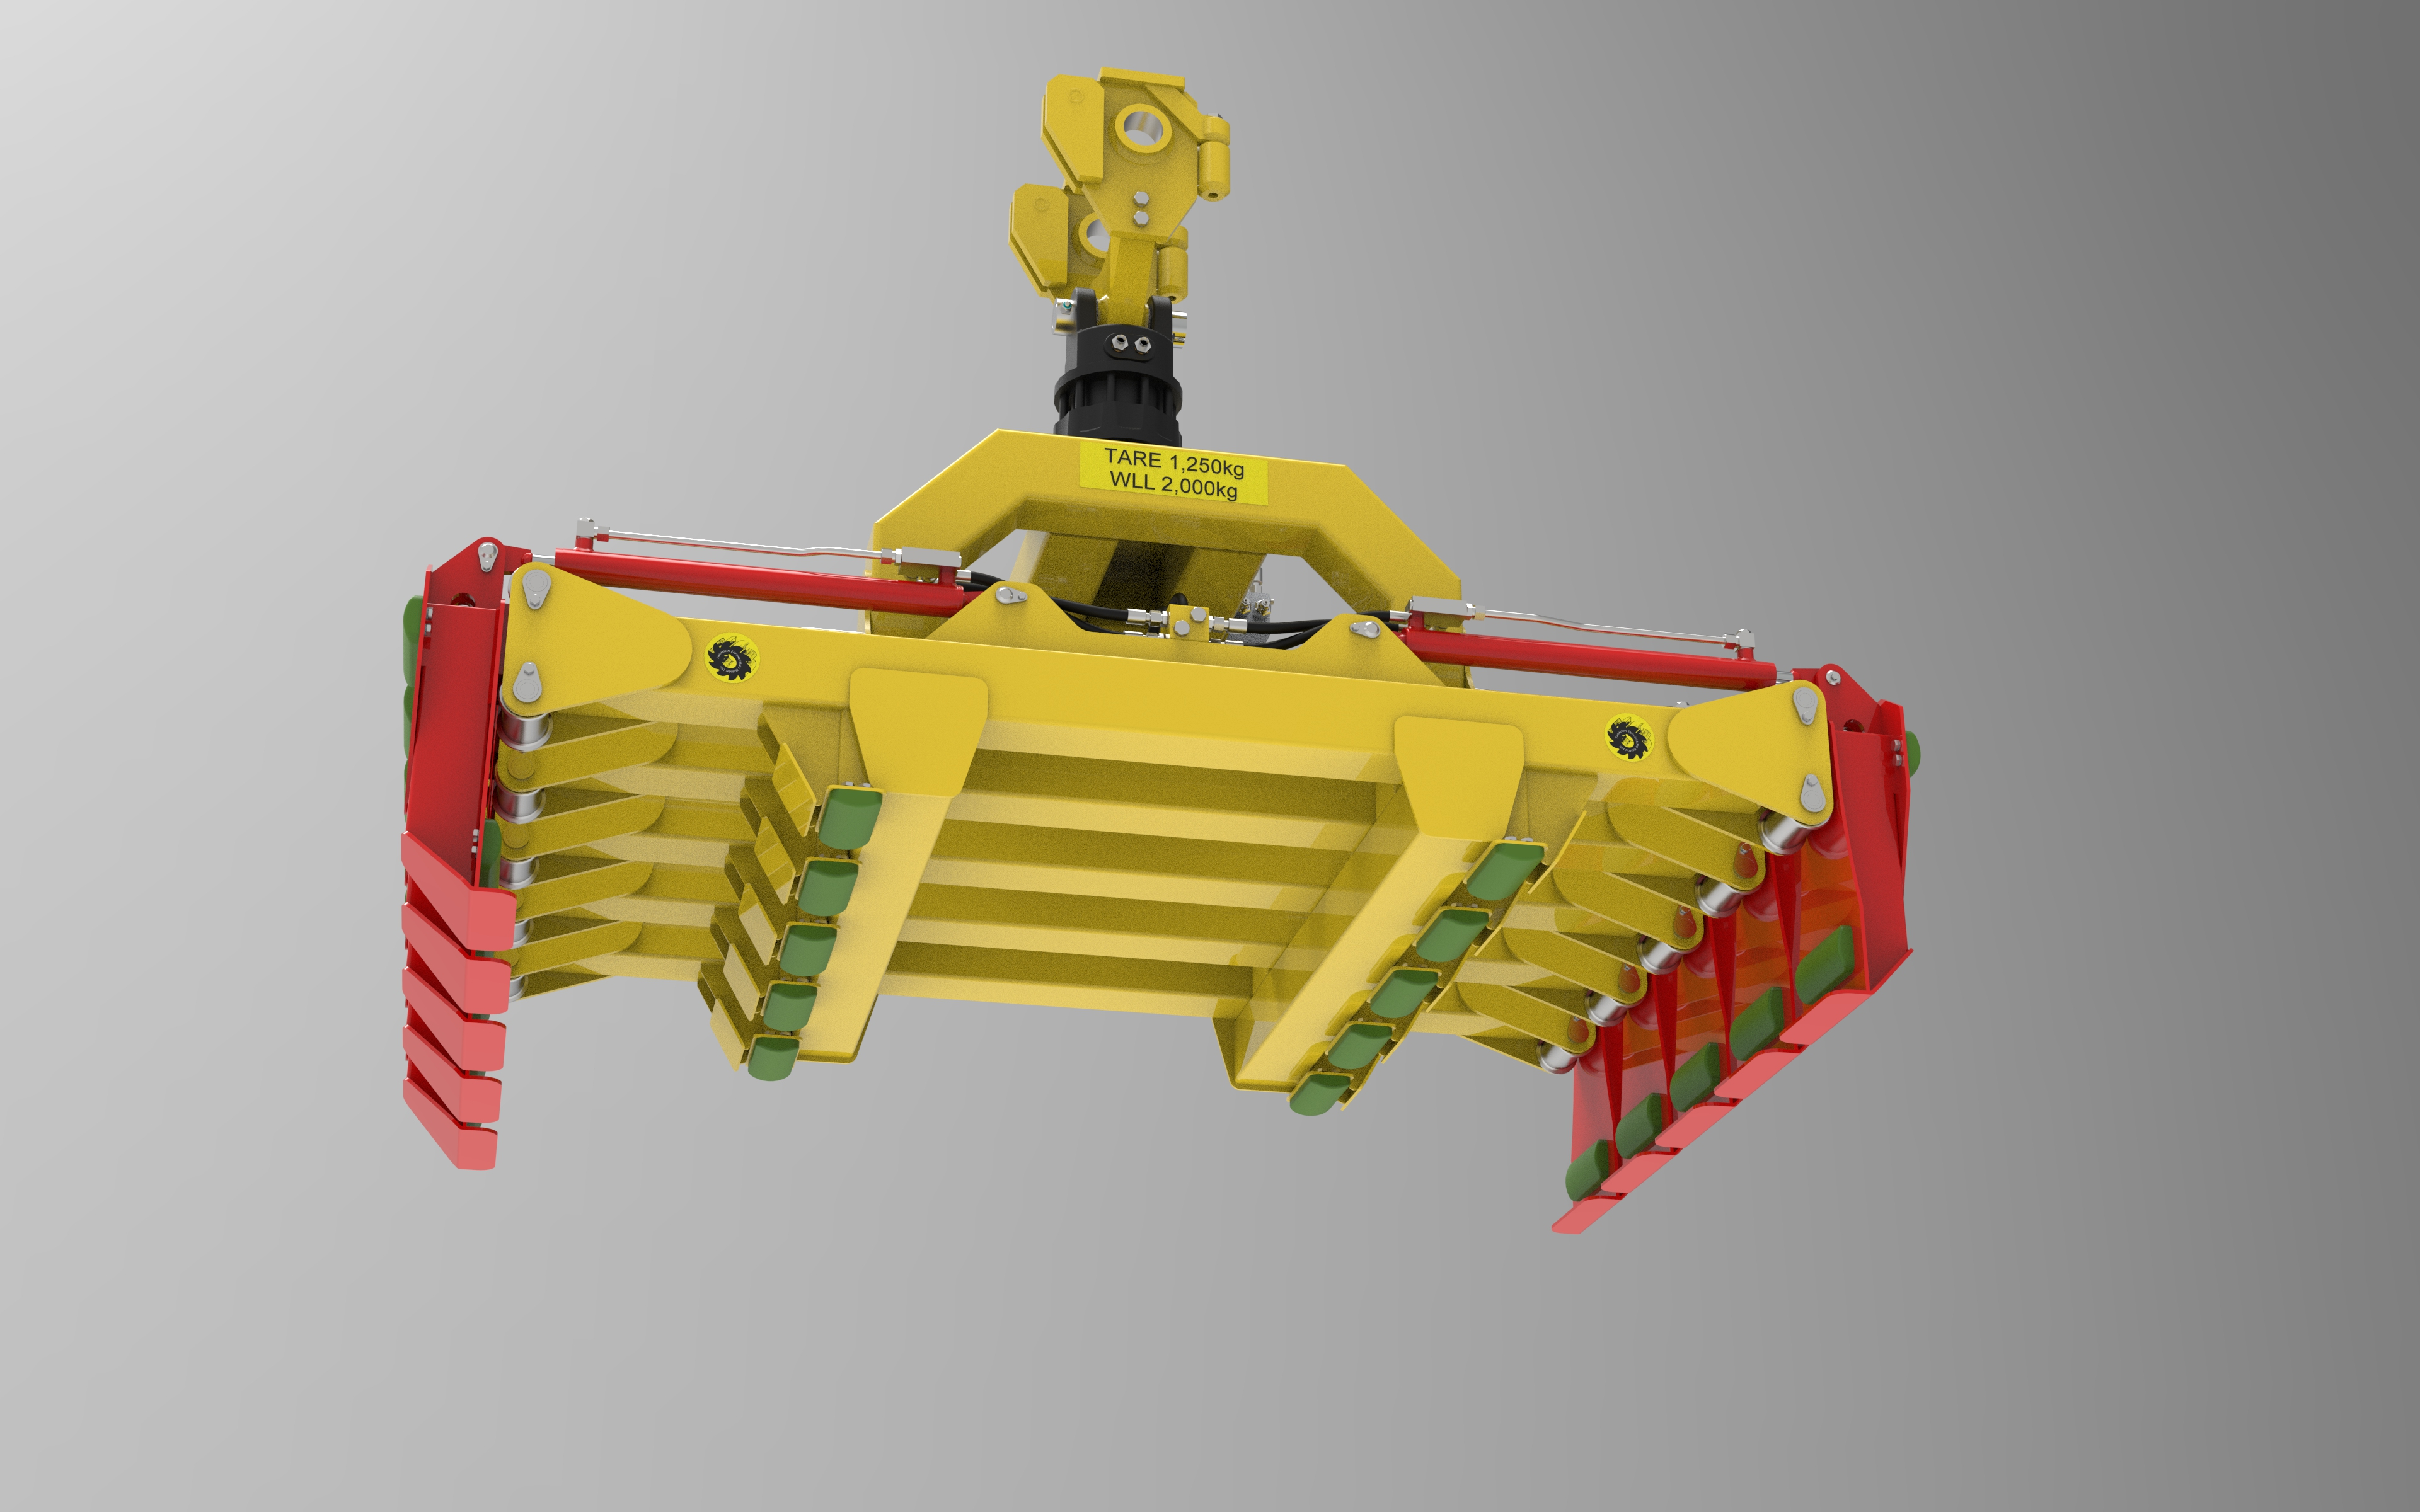 SHB21 Sleeper Handler for automated industries